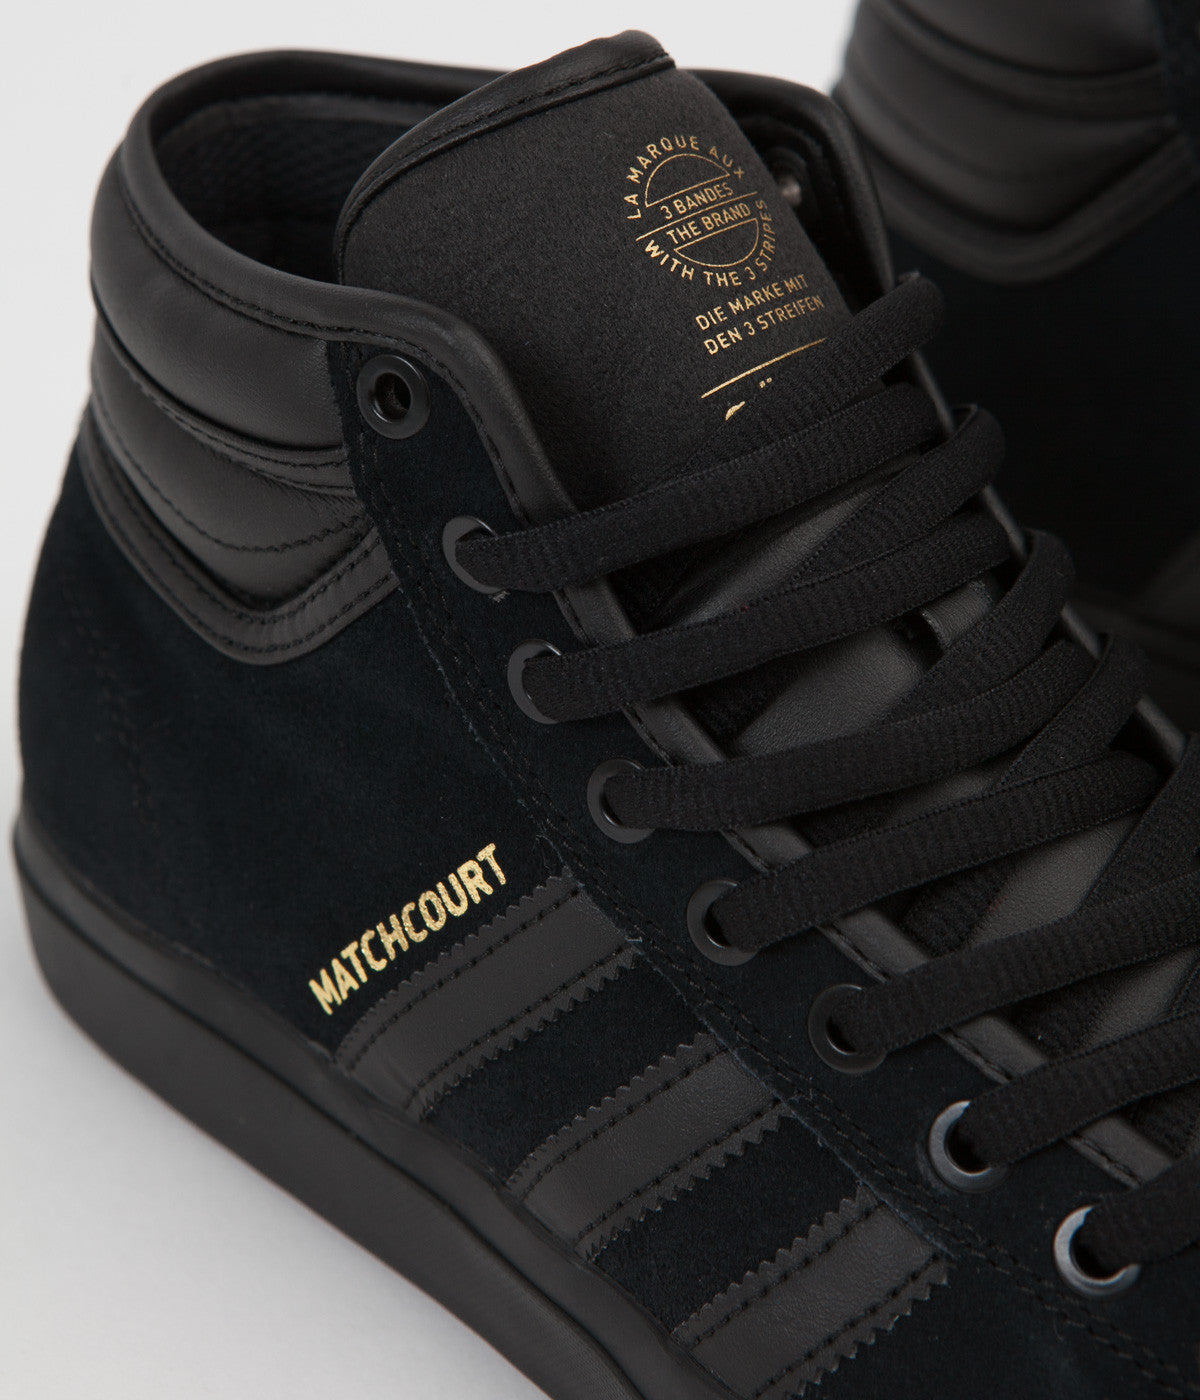 10193b4b25e ... Adidas Matchcourt High RX2 Shoes - Core Black   Core Black   Gold  Metallic ...